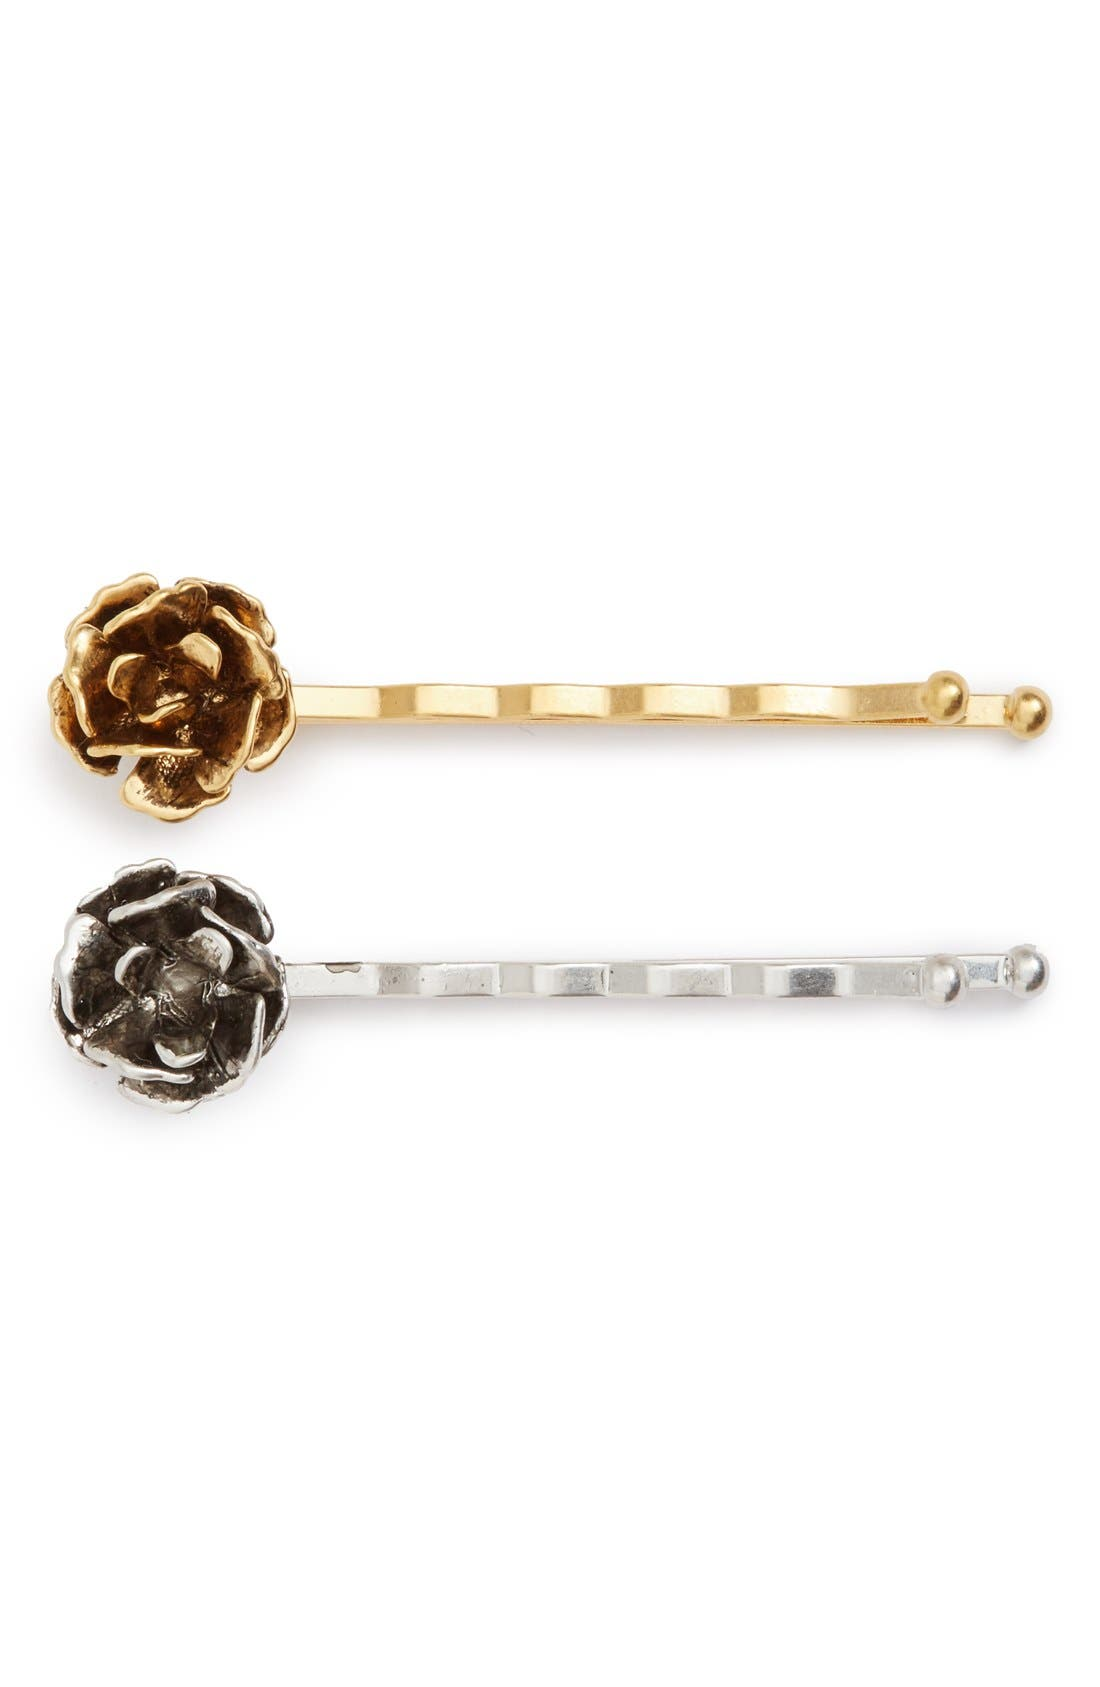 Alternate Image 1 Selected - MARC JACOBS 'Flower' Bobby Pins (Set of 2)